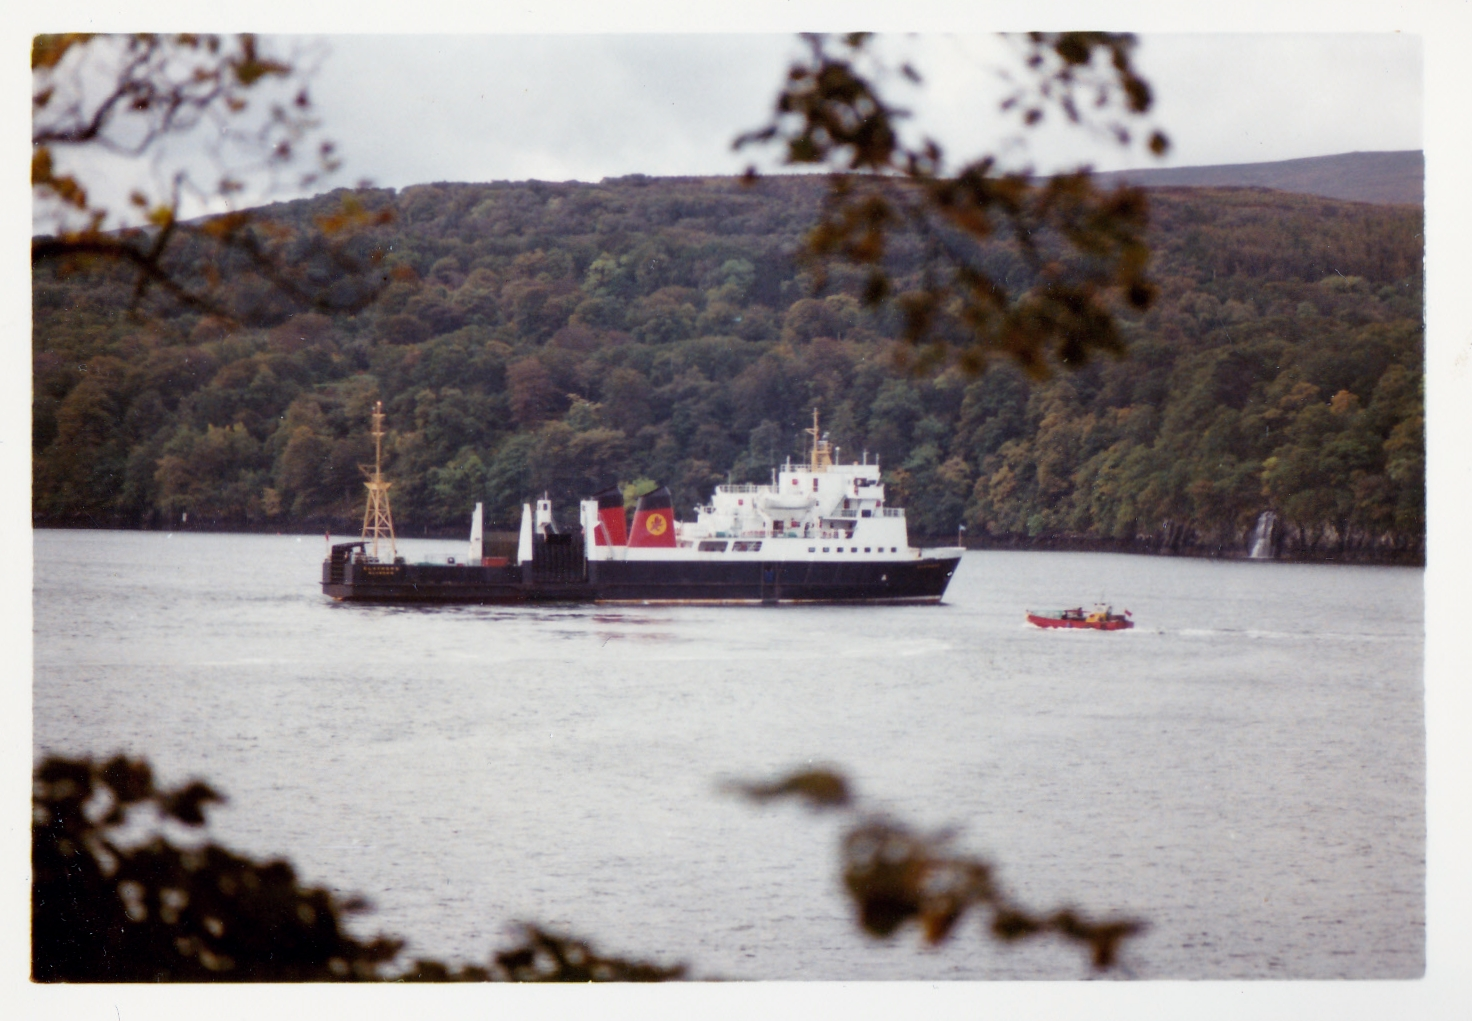 Claymore and Applecross at Tobermory